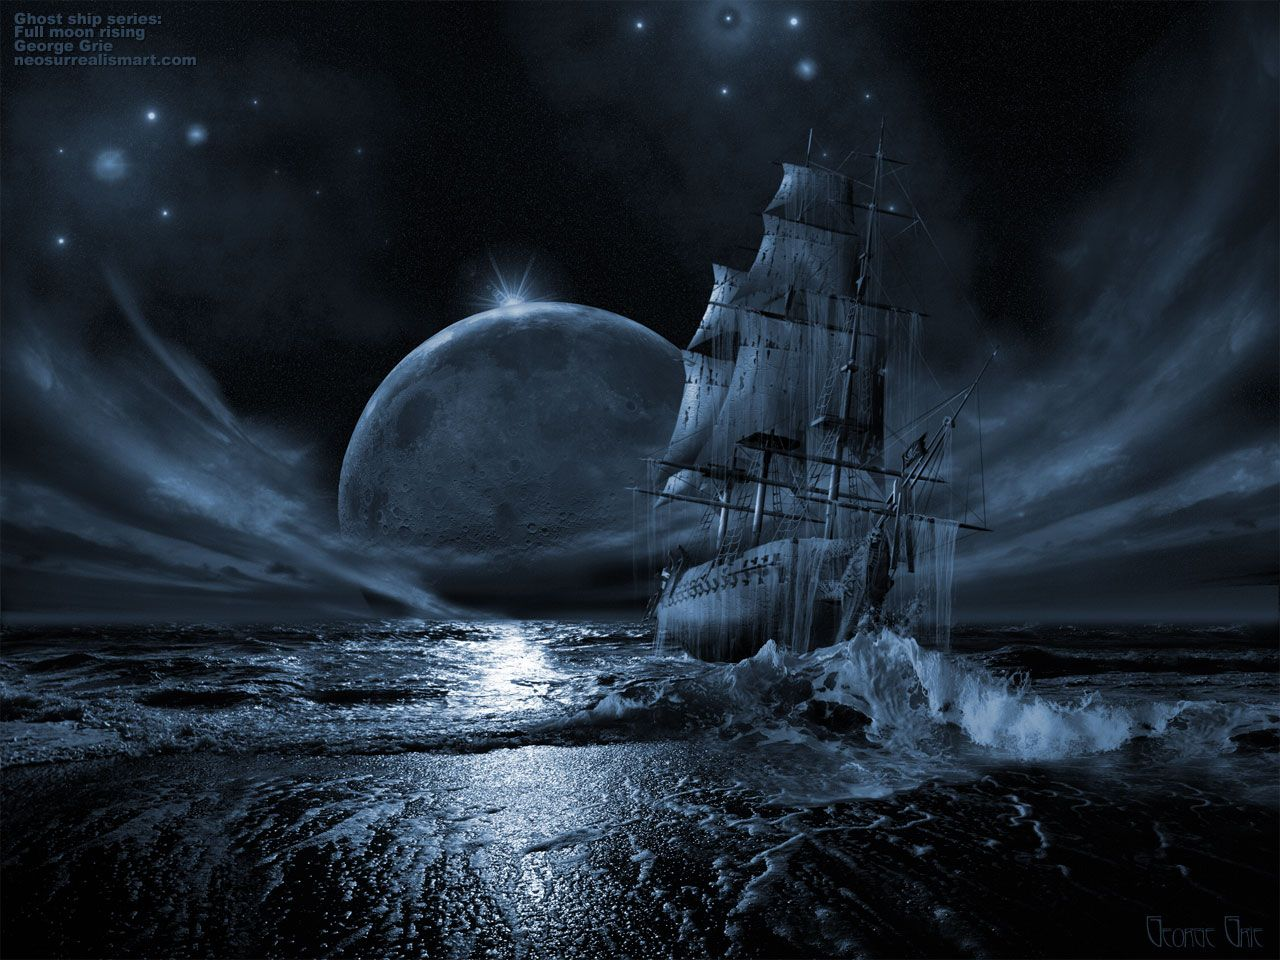 Abandon ship space clipart picture free Ghost Pirate Ship Photos | Ghost Ship Poster image - vector clip art ... picture free